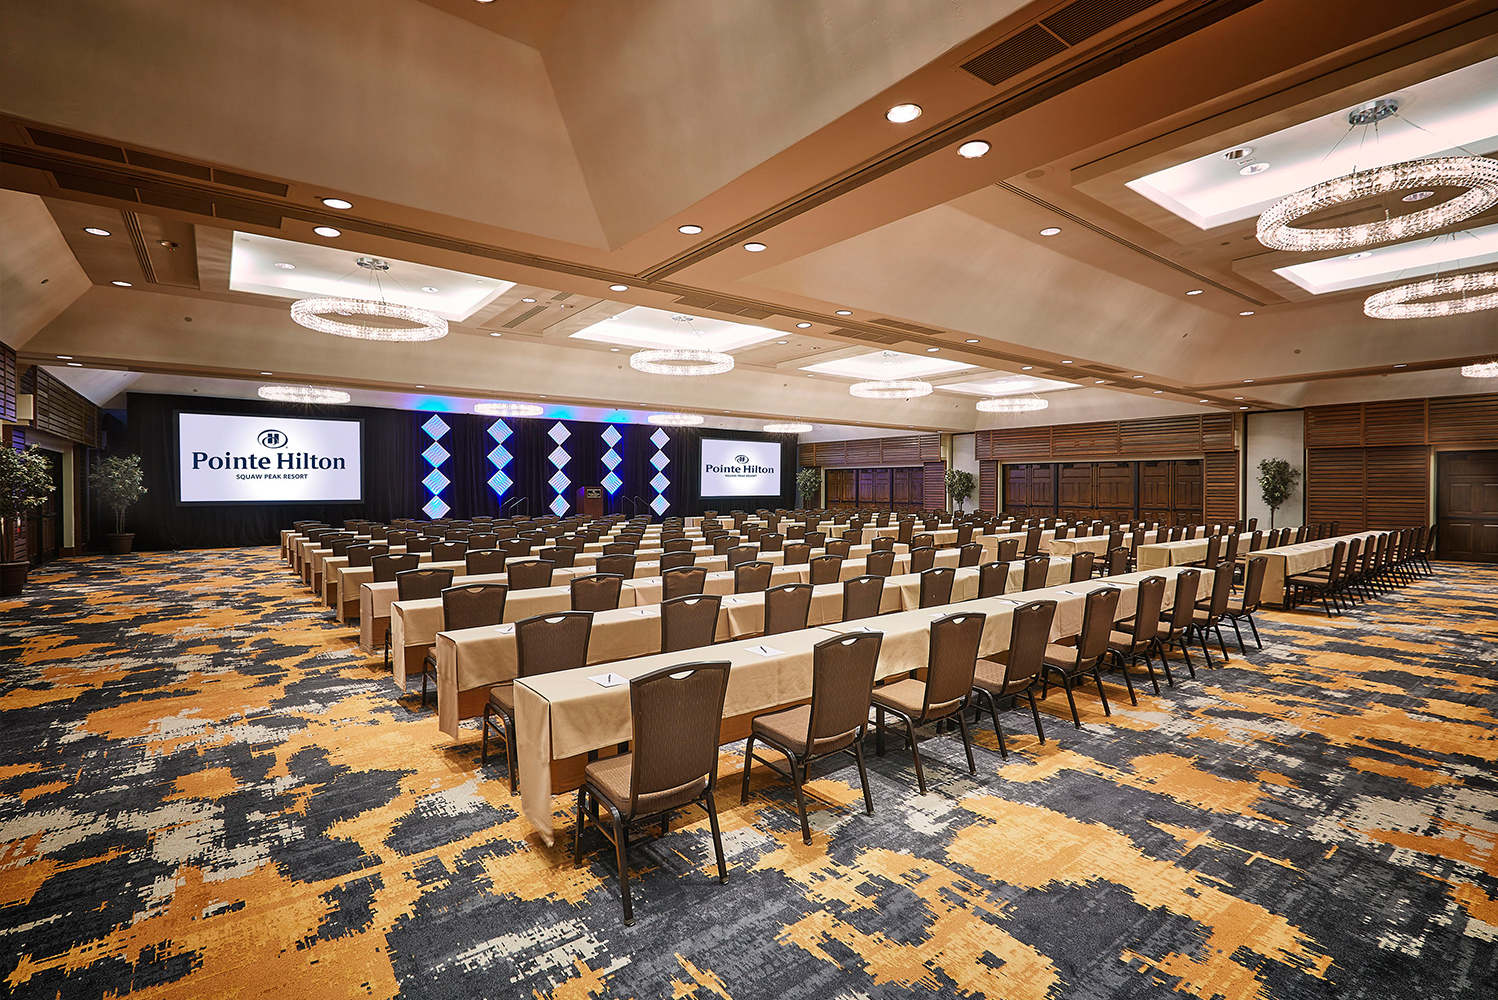 The meeting spaces were renovated with new decorative textured wall vinyl, revamped ceilings and custom crystal chandeliers.